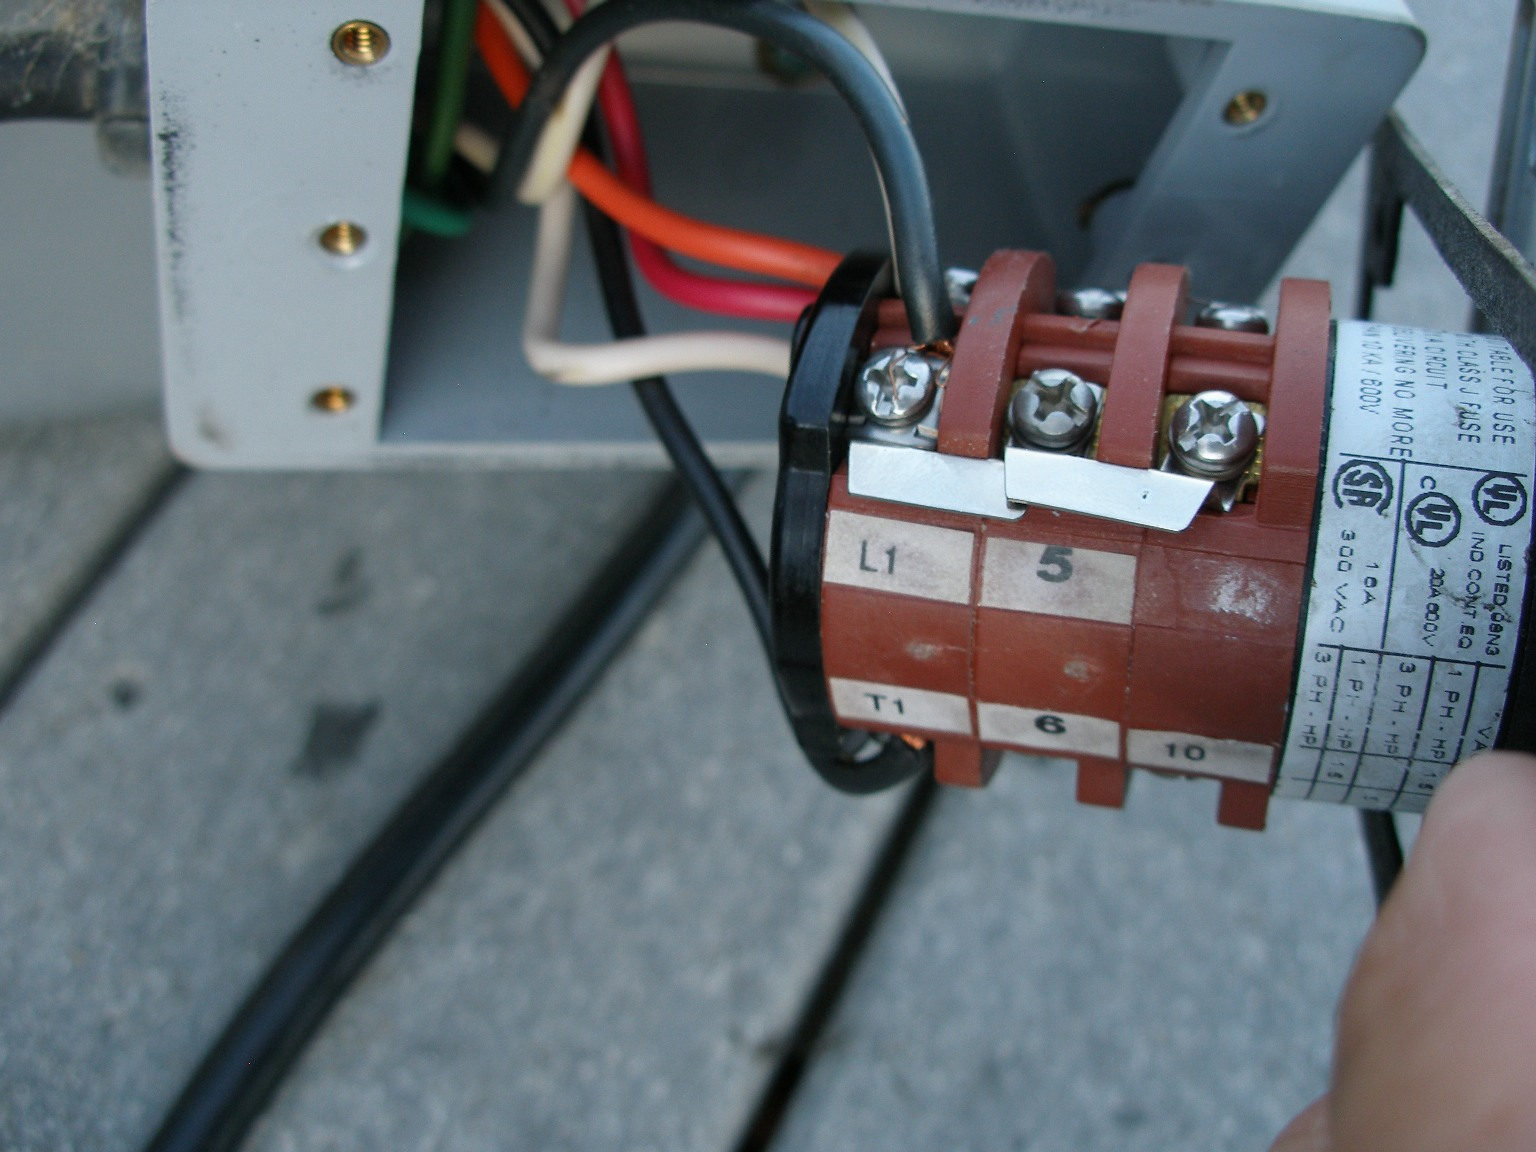 Light Switch Wiring Diagram As Well As Mercury Outboard Wiring Diagram